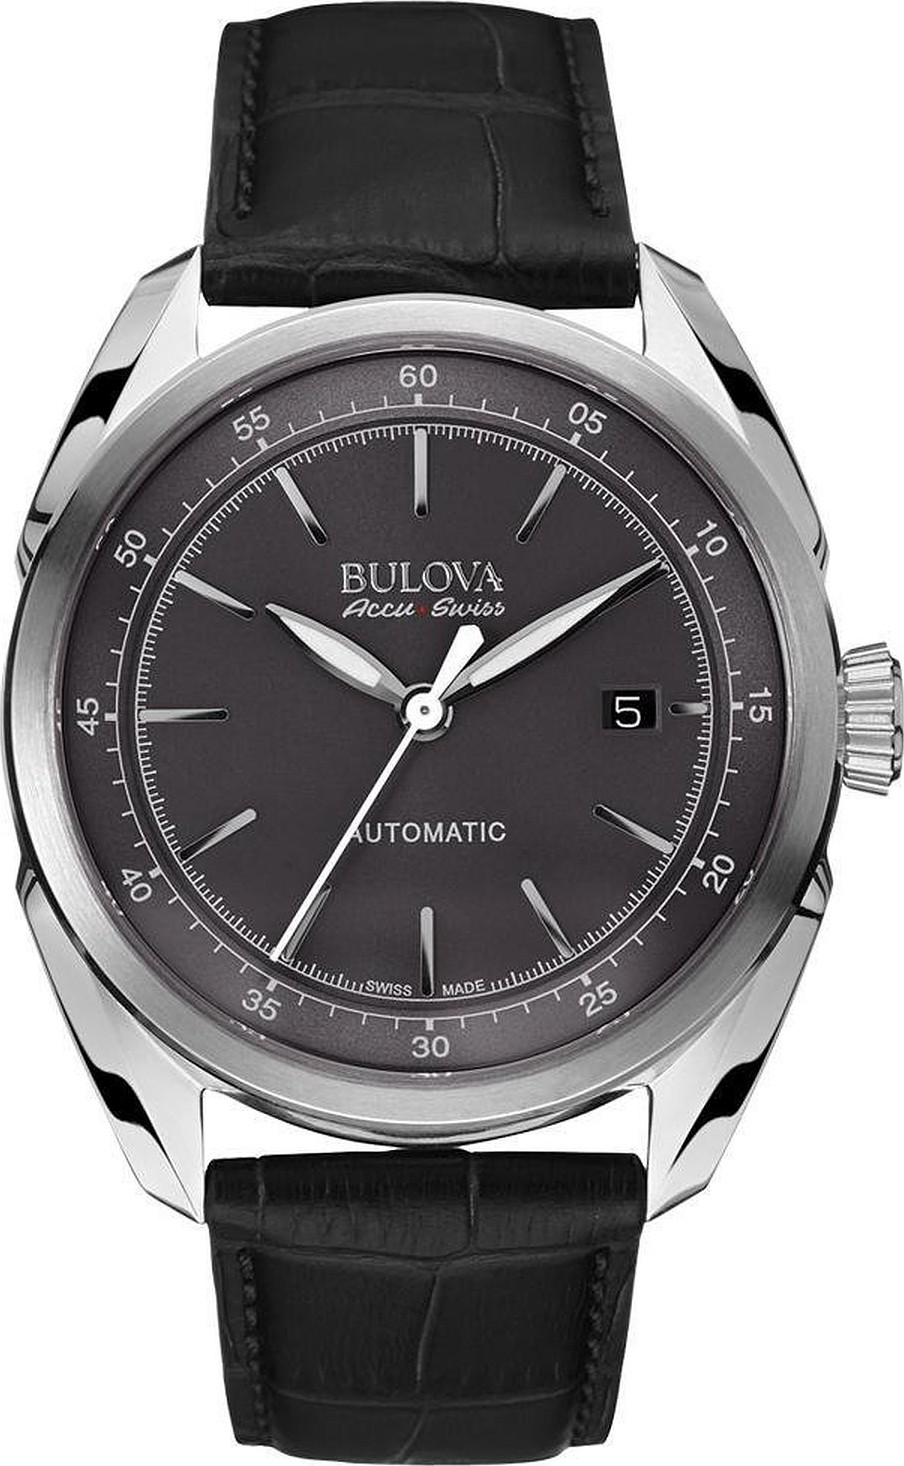 Bulova AccuSwiss Tellaro Automatic Watch 43mm